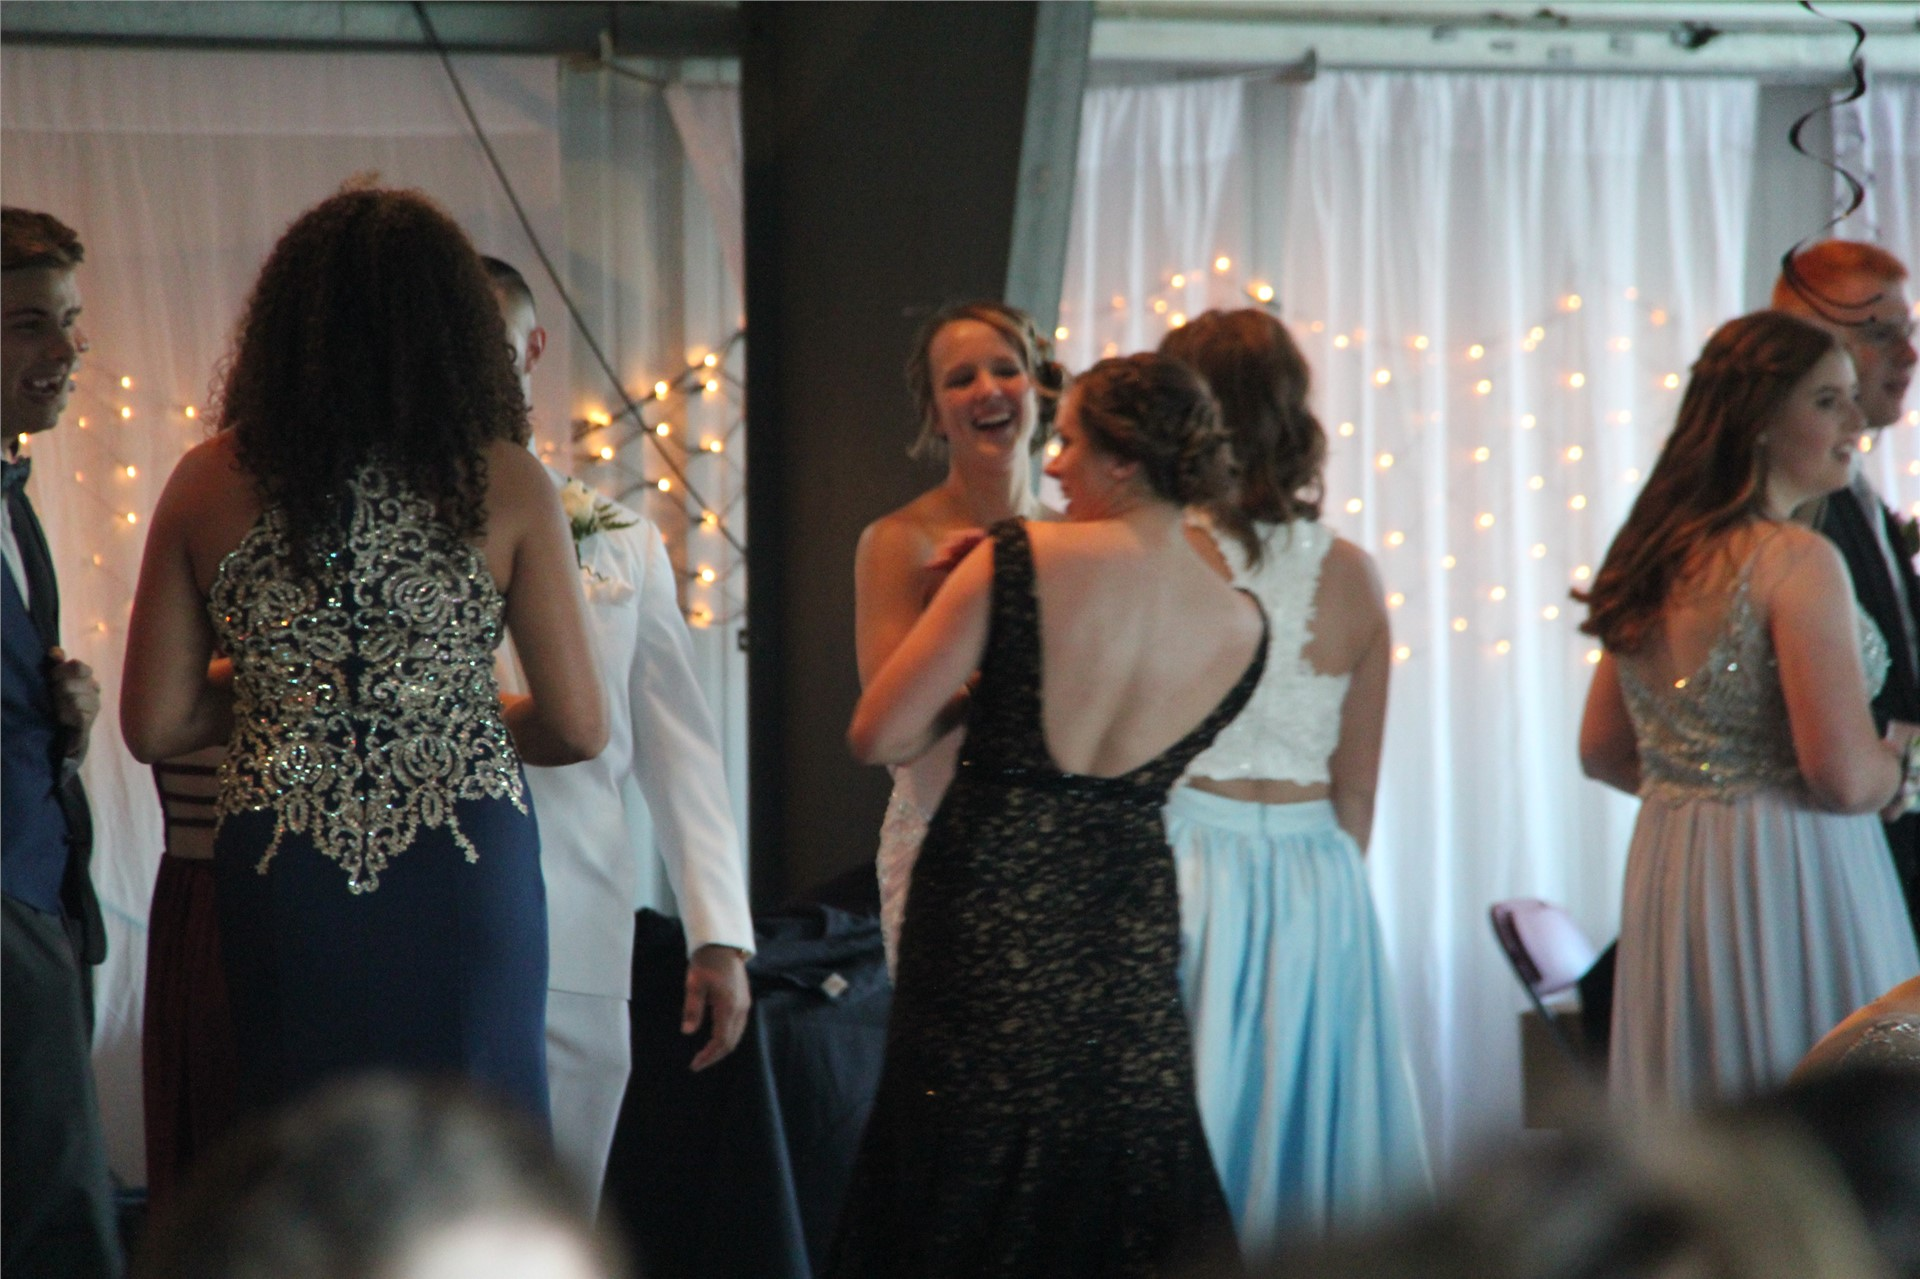 far shot of students socializing inside prom venue